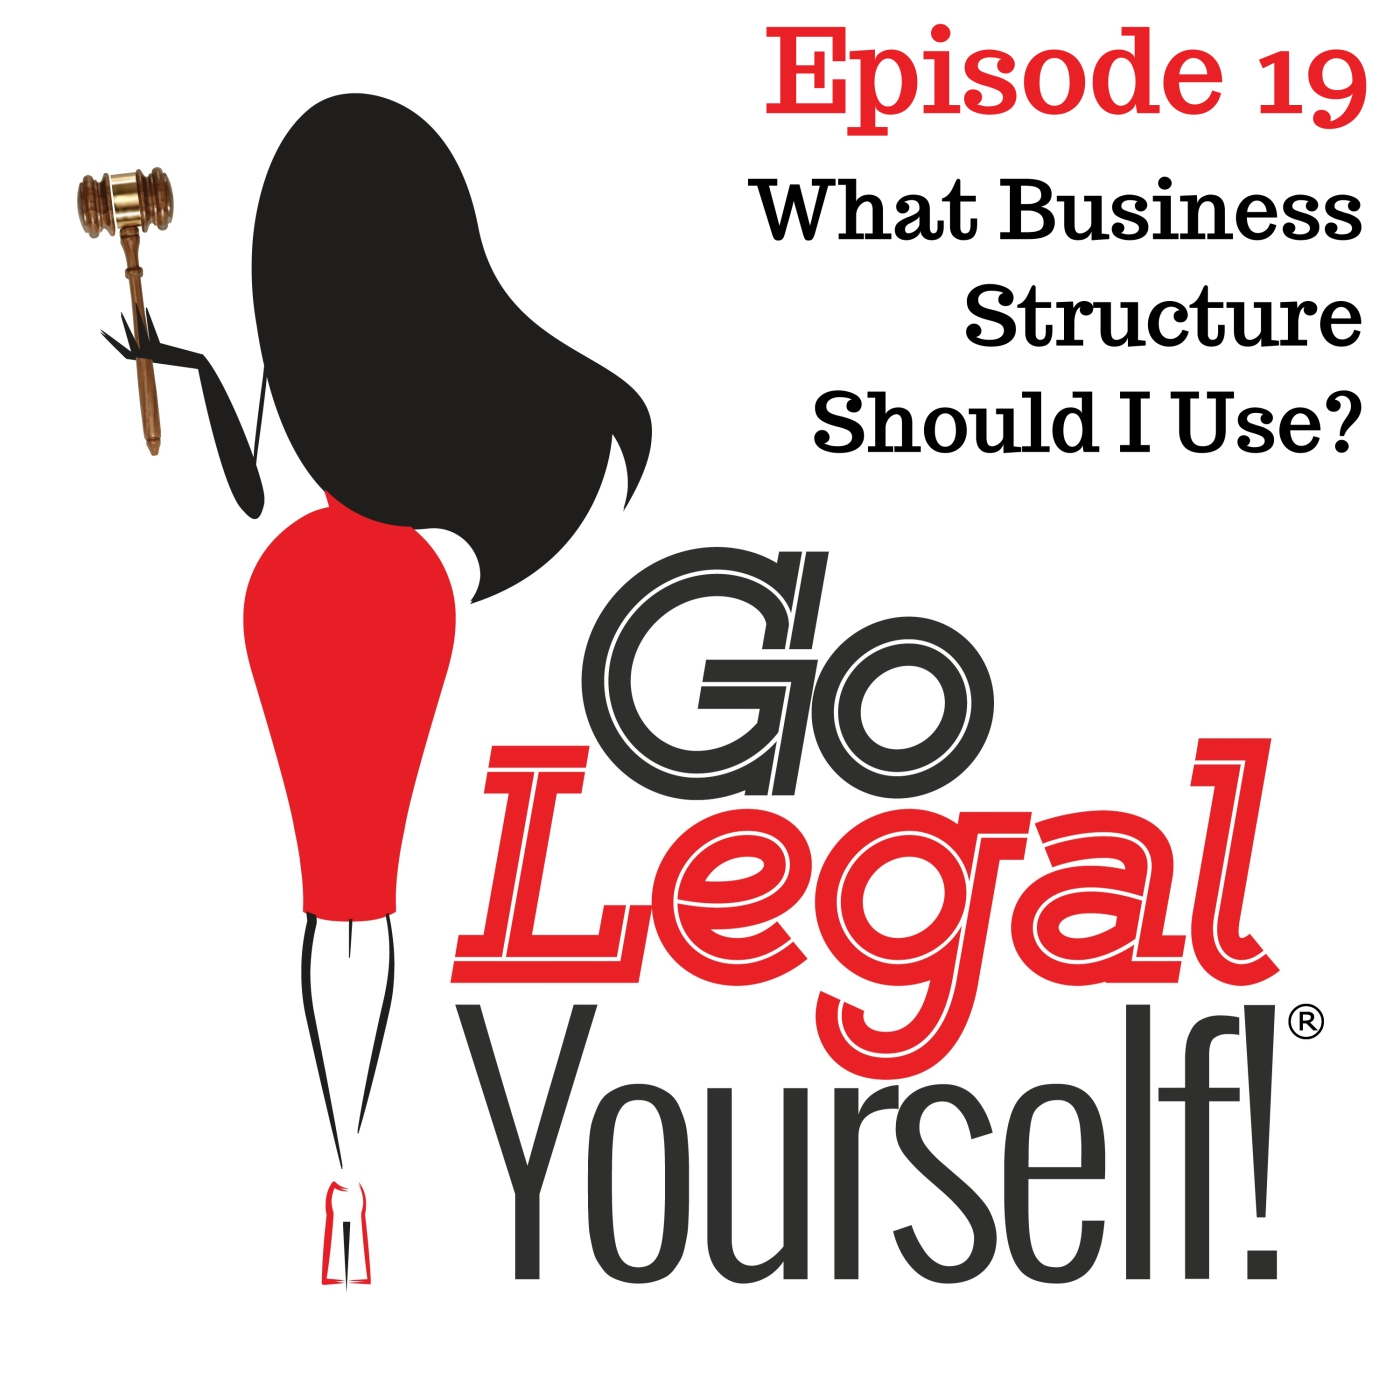 Ep. 19 What Business Structure Should I Use?